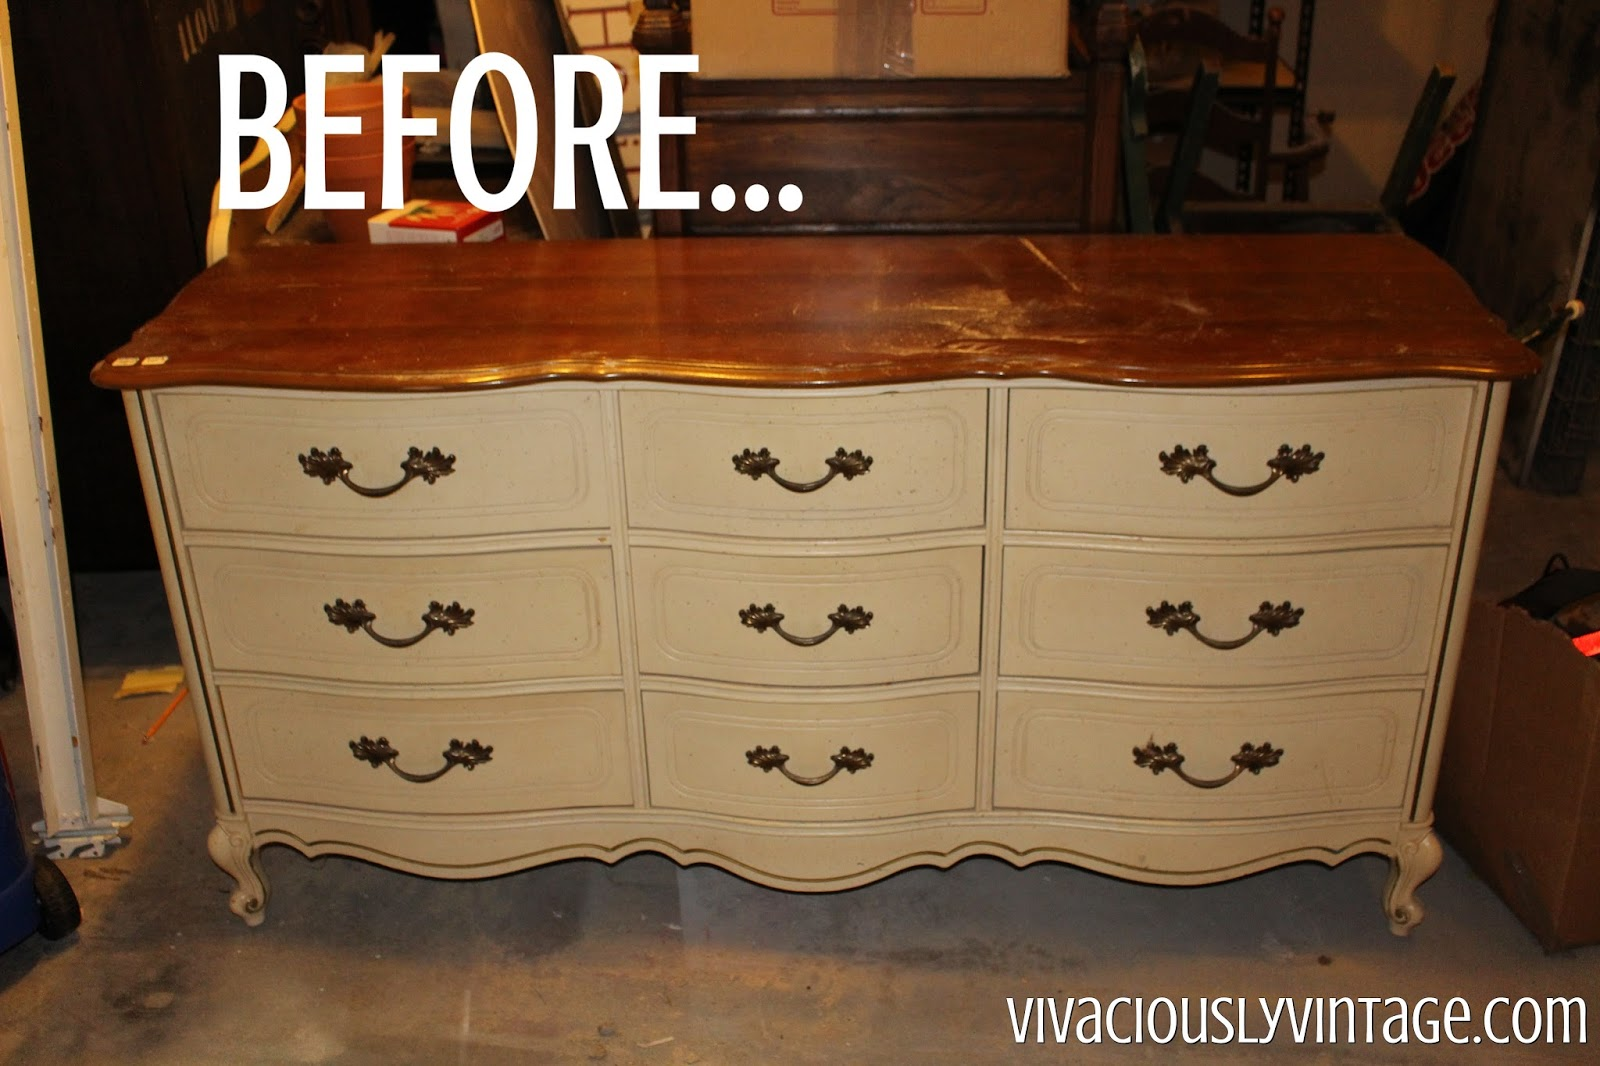 I Ve Seen Several Beautiful White Gold Dipped French Provincial Dressers On Pinterest Loved The Look And Knew That Needed A Dresser